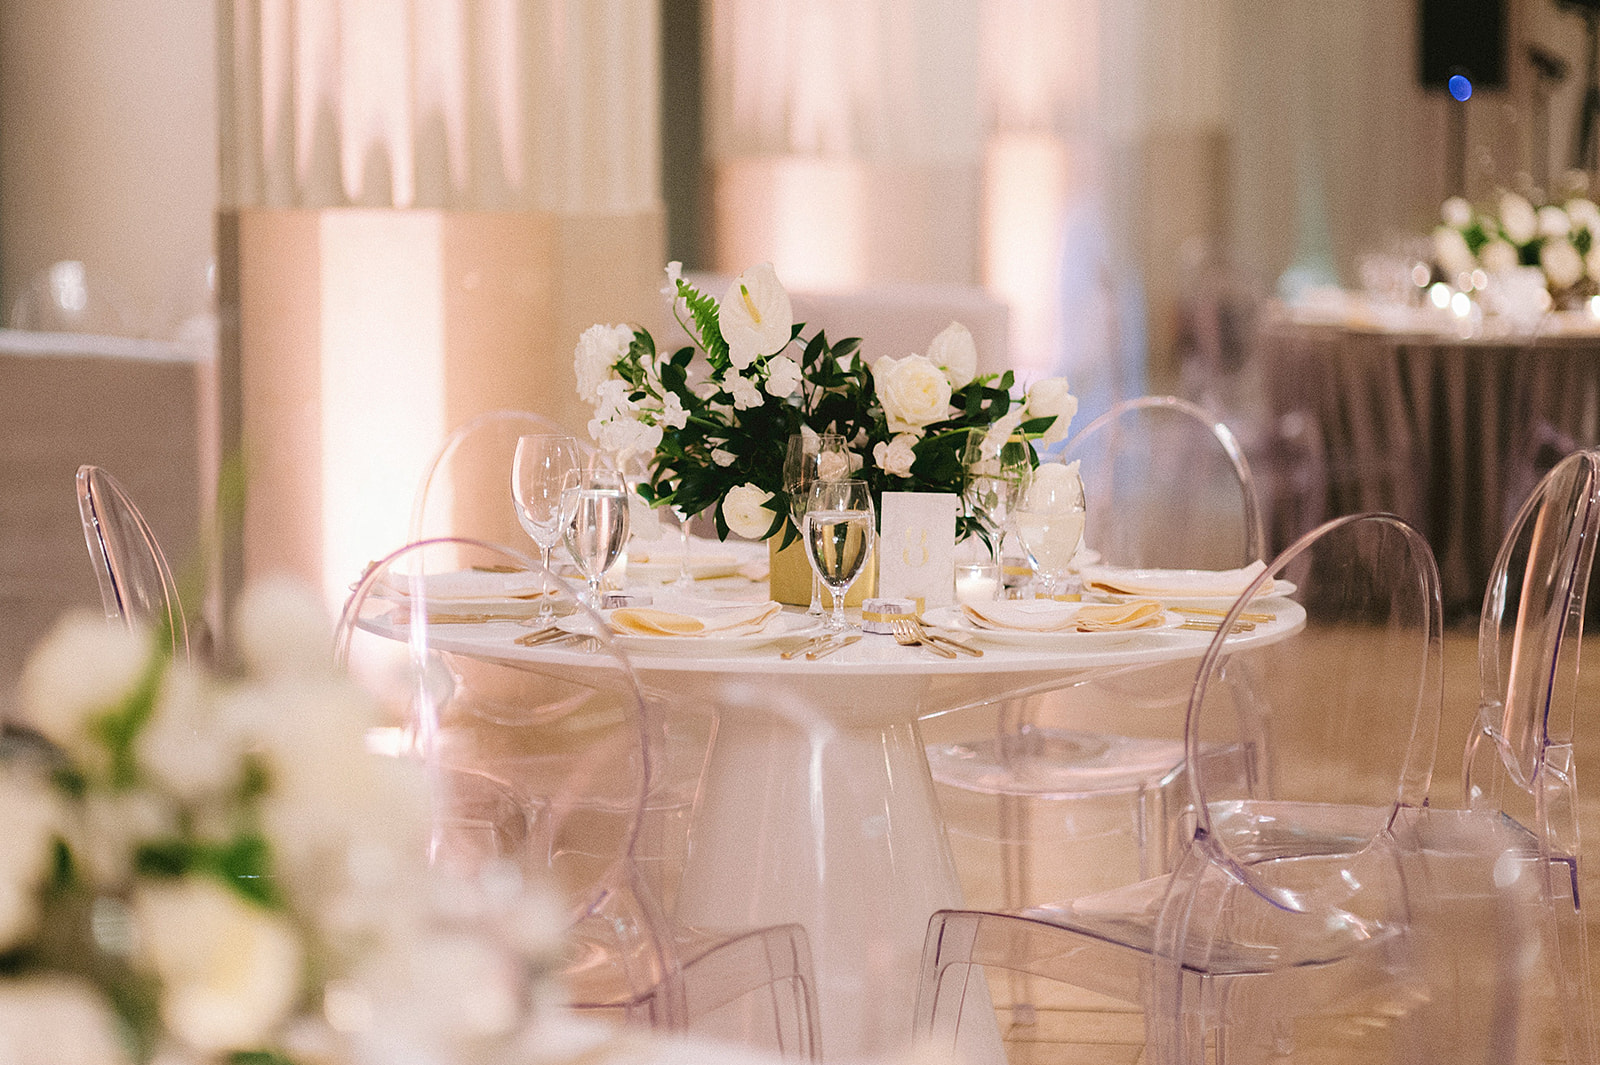 For Michelle and Soo's Modern Luxe wedding in the heart of downtown Houston, Spell Events…romantic candlelit tablescape with marble accents and large floral installation